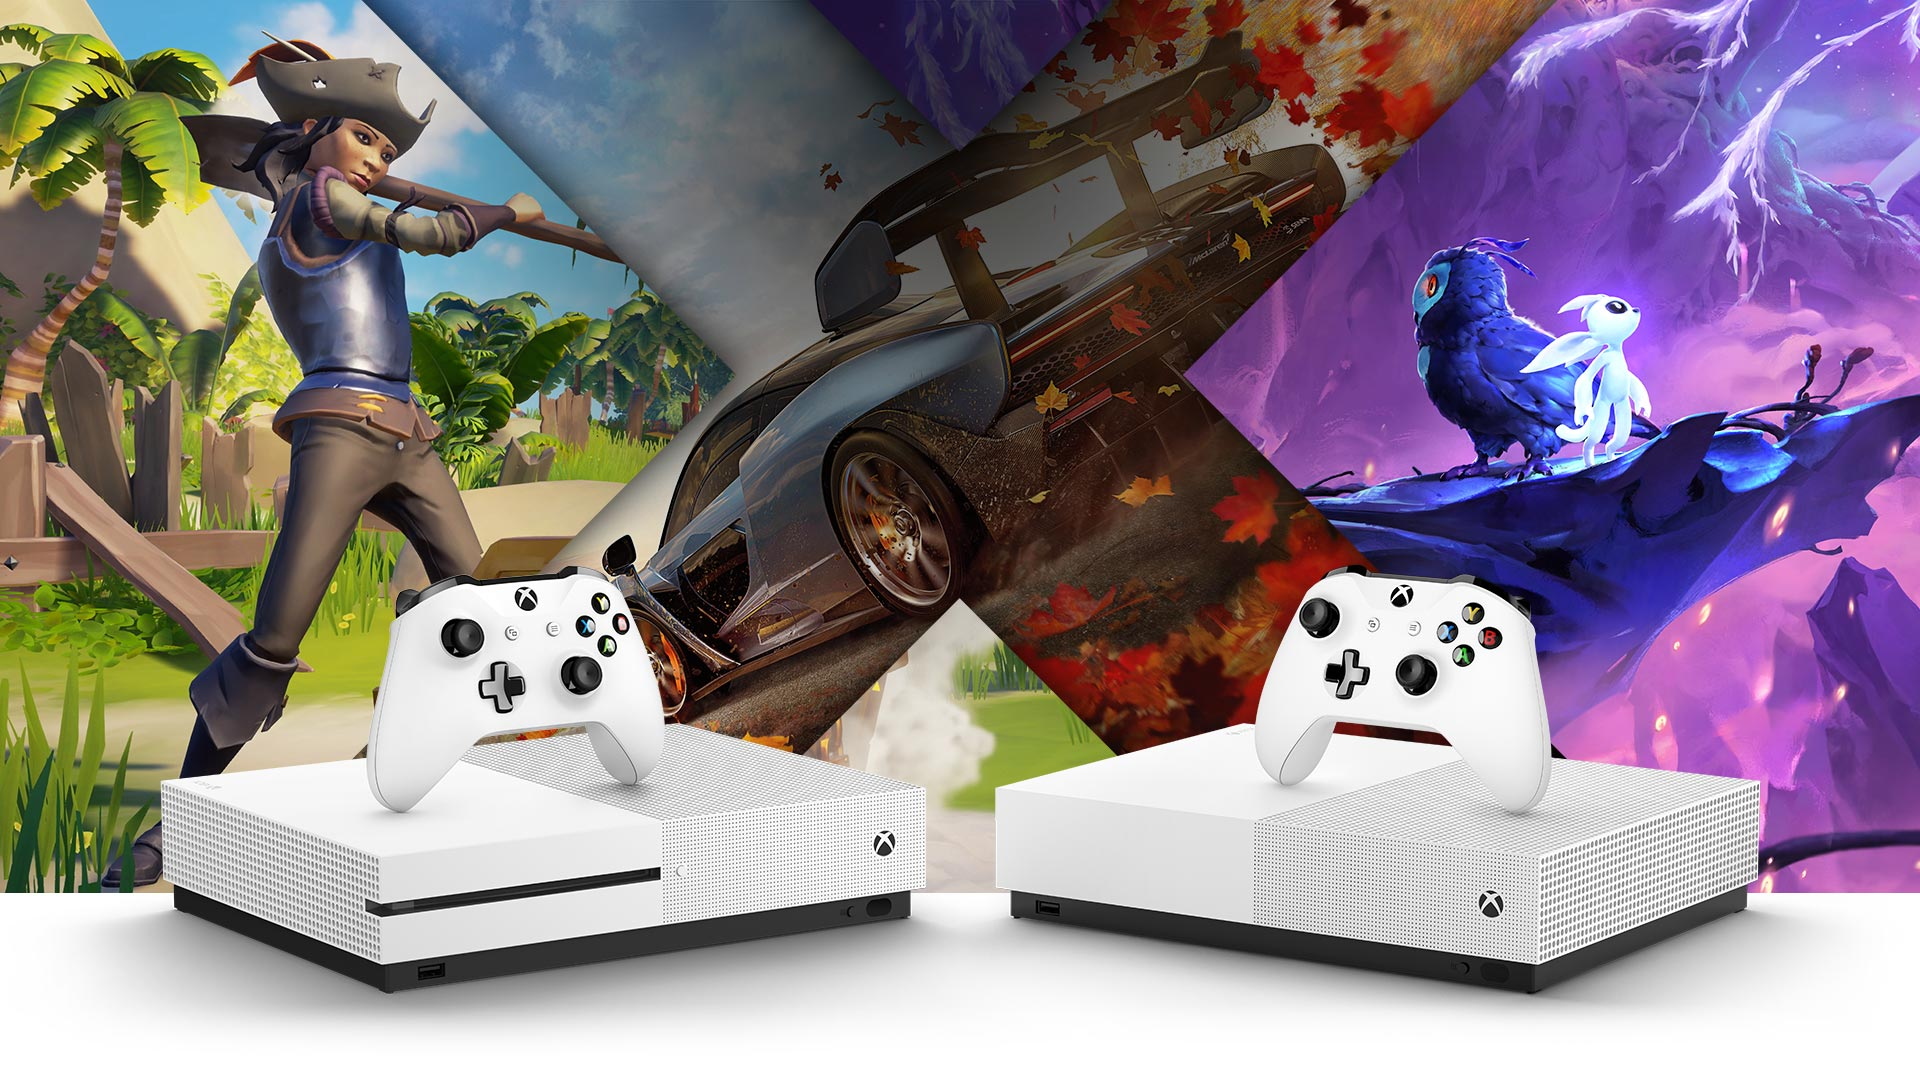 Xbox One S 和 Xbox One S All Digital Edition 由 Sea of Thieves、Forza Horizon 4、Ori and the Will of Wisps 圖案所圍繞的正面圖